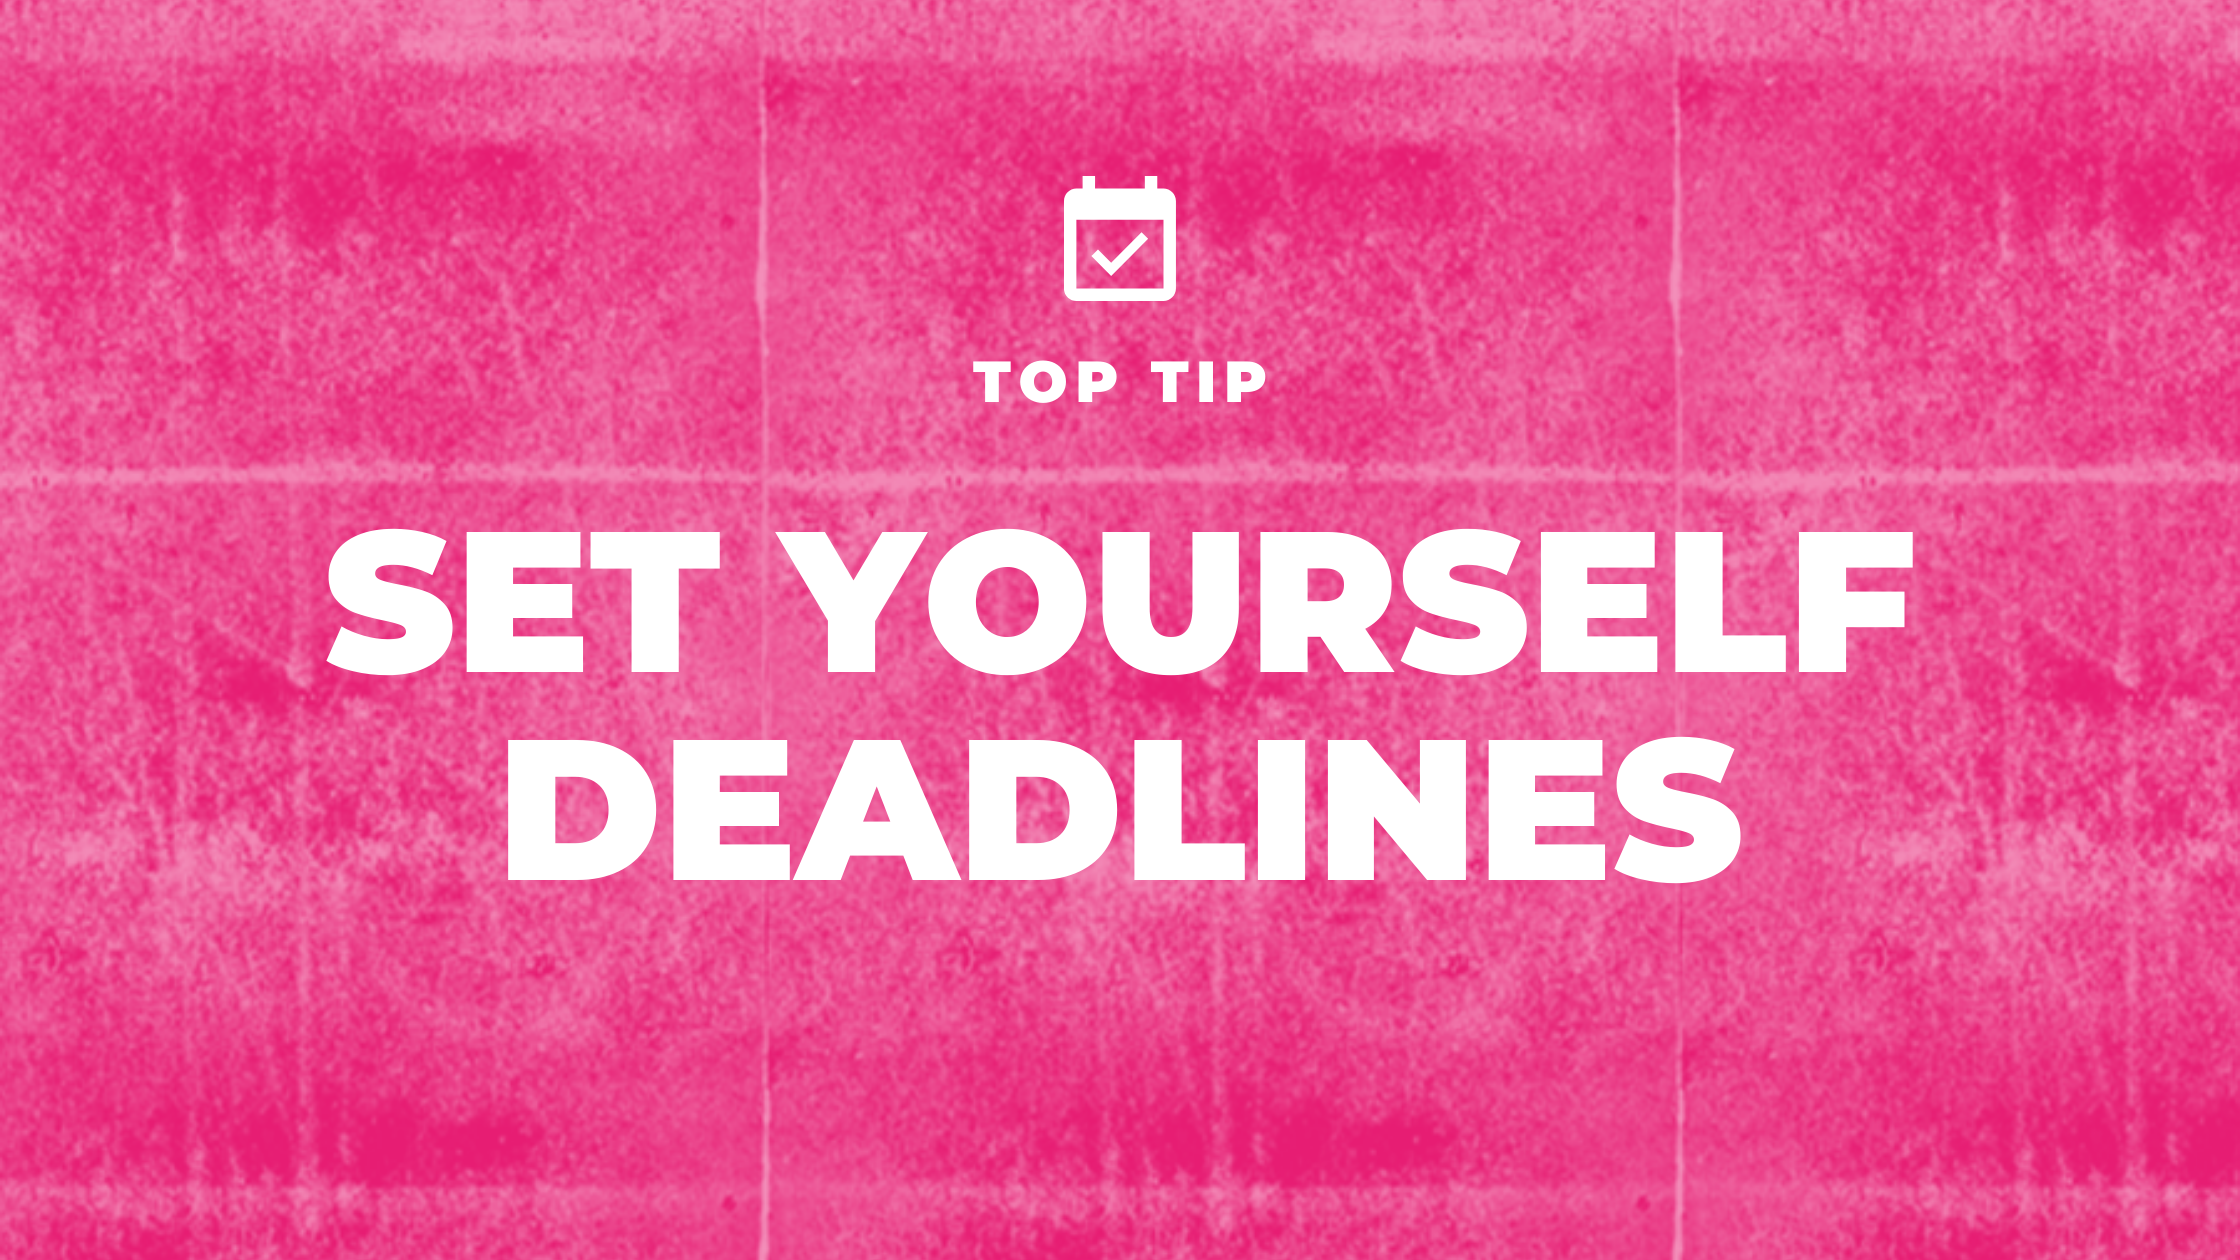 Set yourself business deadlines blog header